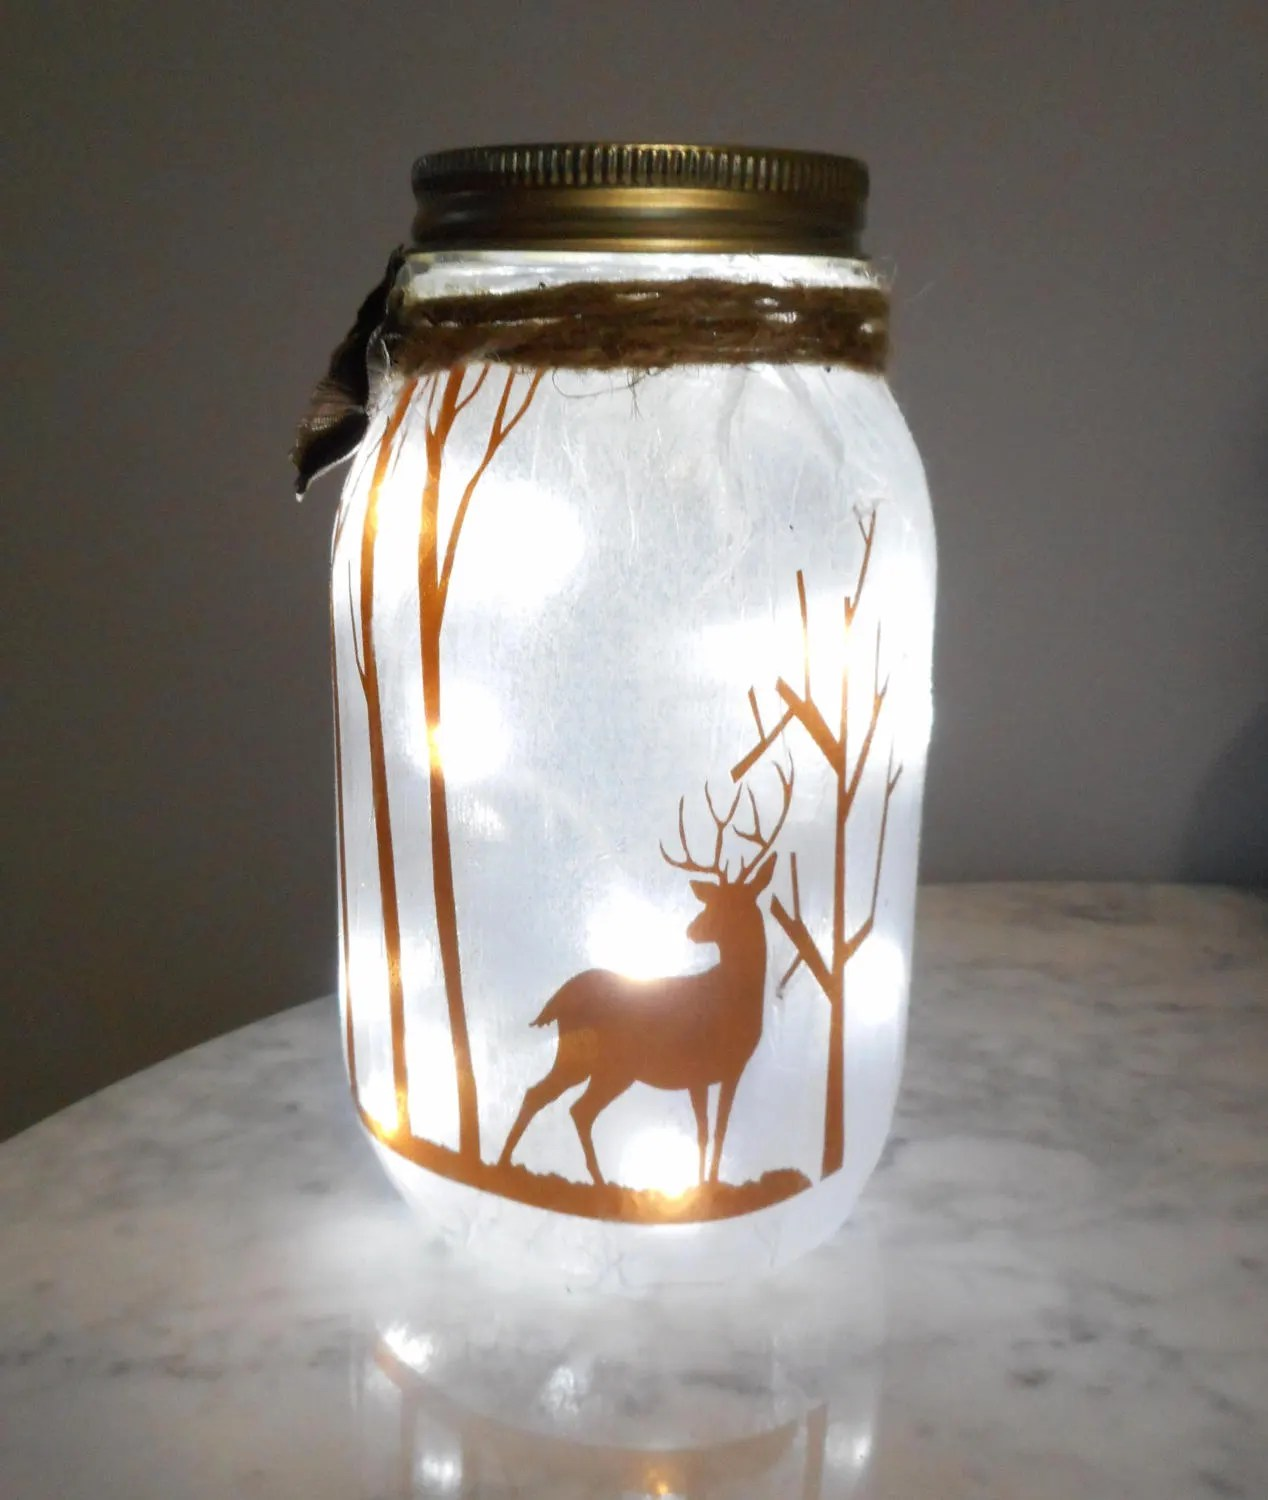 Battery Powered Sconces Deer Night Light Mason Jar Lights Hunting Theme Woodland